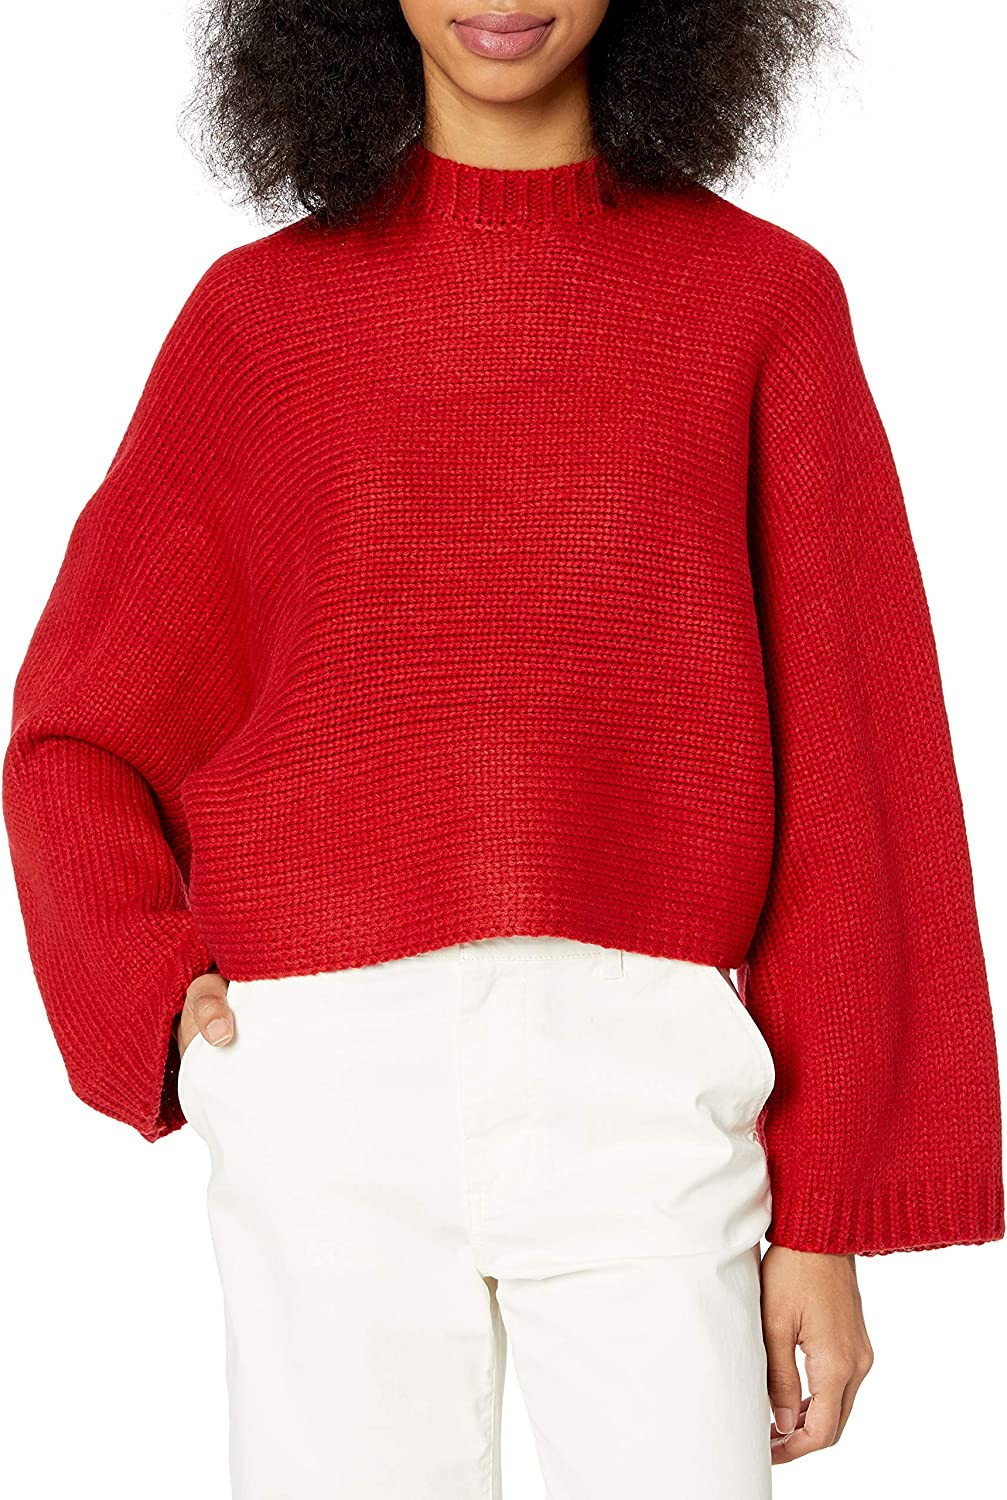 Jack Women's Neck Yourself Cropped Sweater